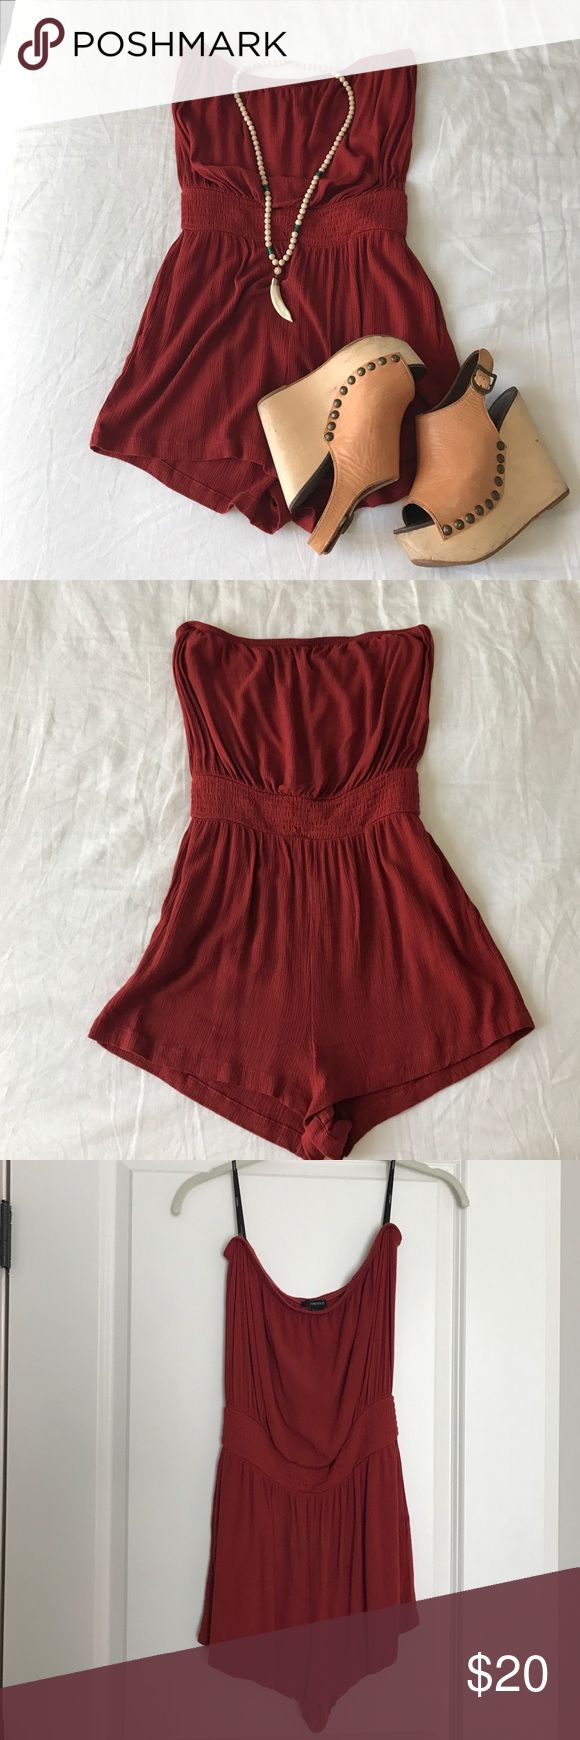 Women's Strapless Romper Burnt orange. Strapless. Pockets. Cinched waist. Super comfy and flattering. Can we worn with wedges, sandals, jean jacket, layered necklaces, so many ways!! Forever 21 Other